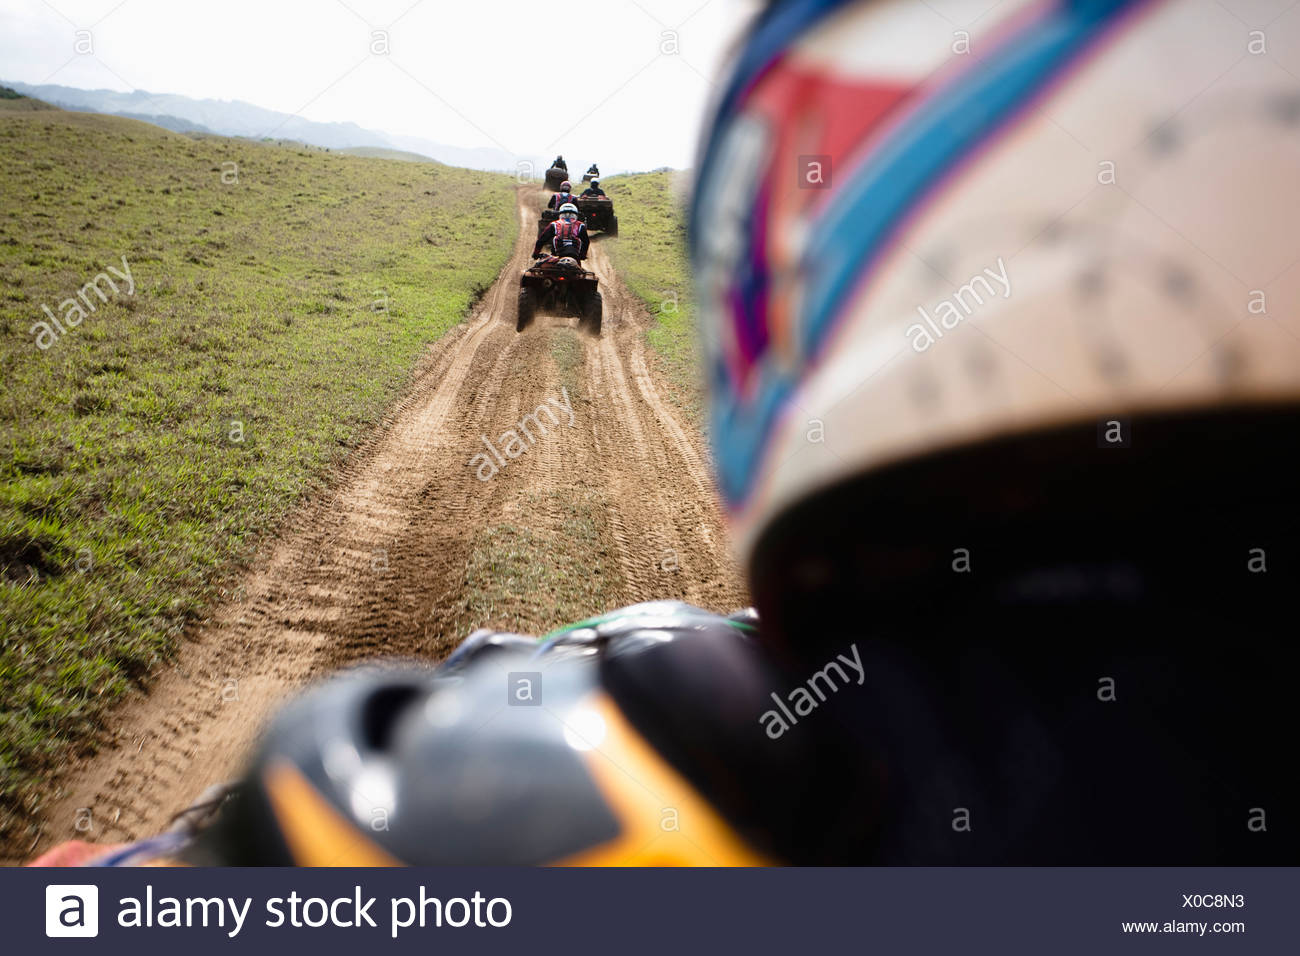 A group of man rides their quads through a dirt road from Catemaco to Coatzacoalcos in Veracruz, Mexico. - Stock Image